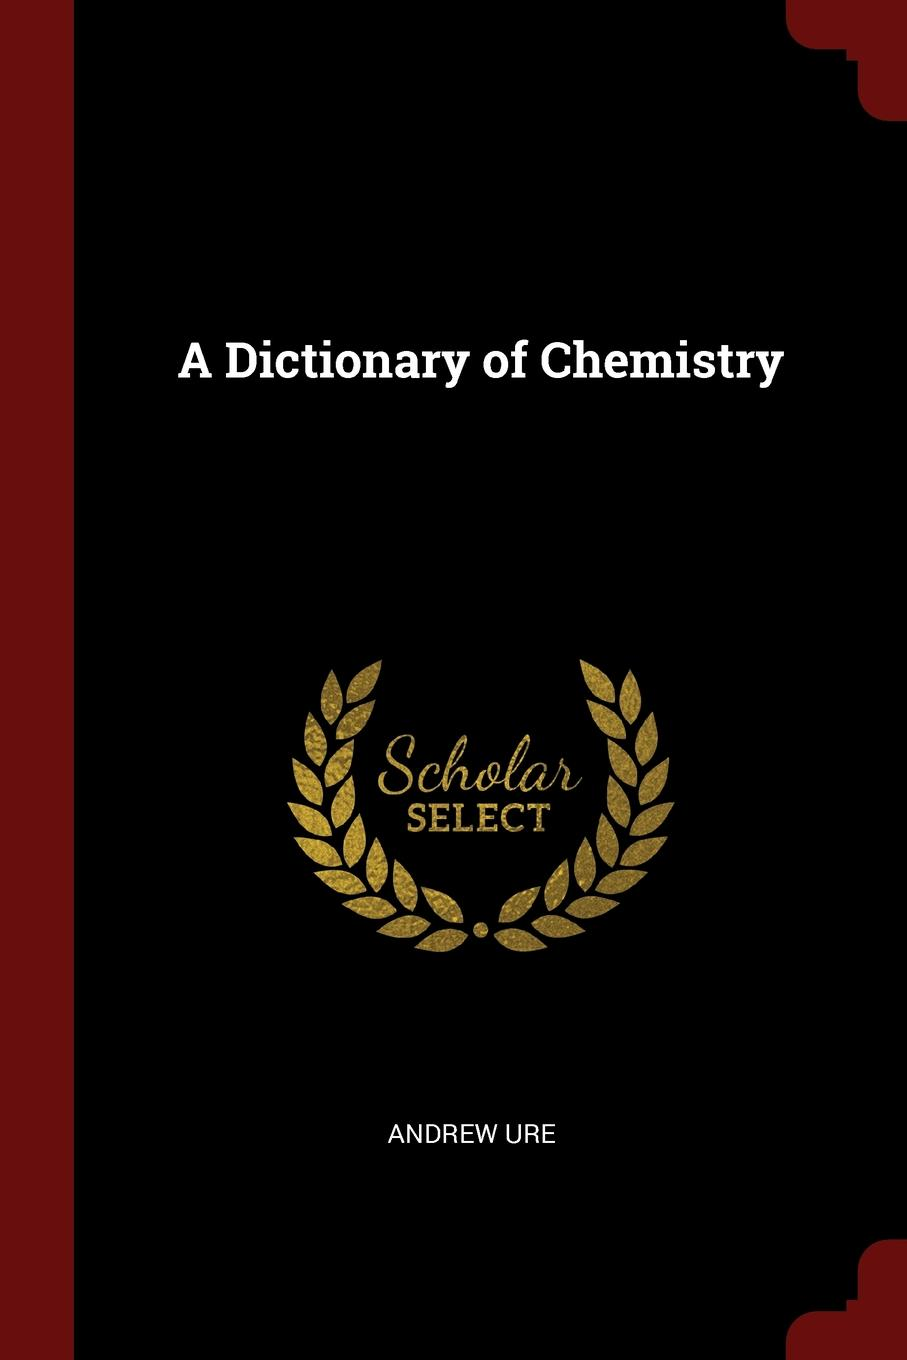 Andrew Ure A Dictionary of Chemistry